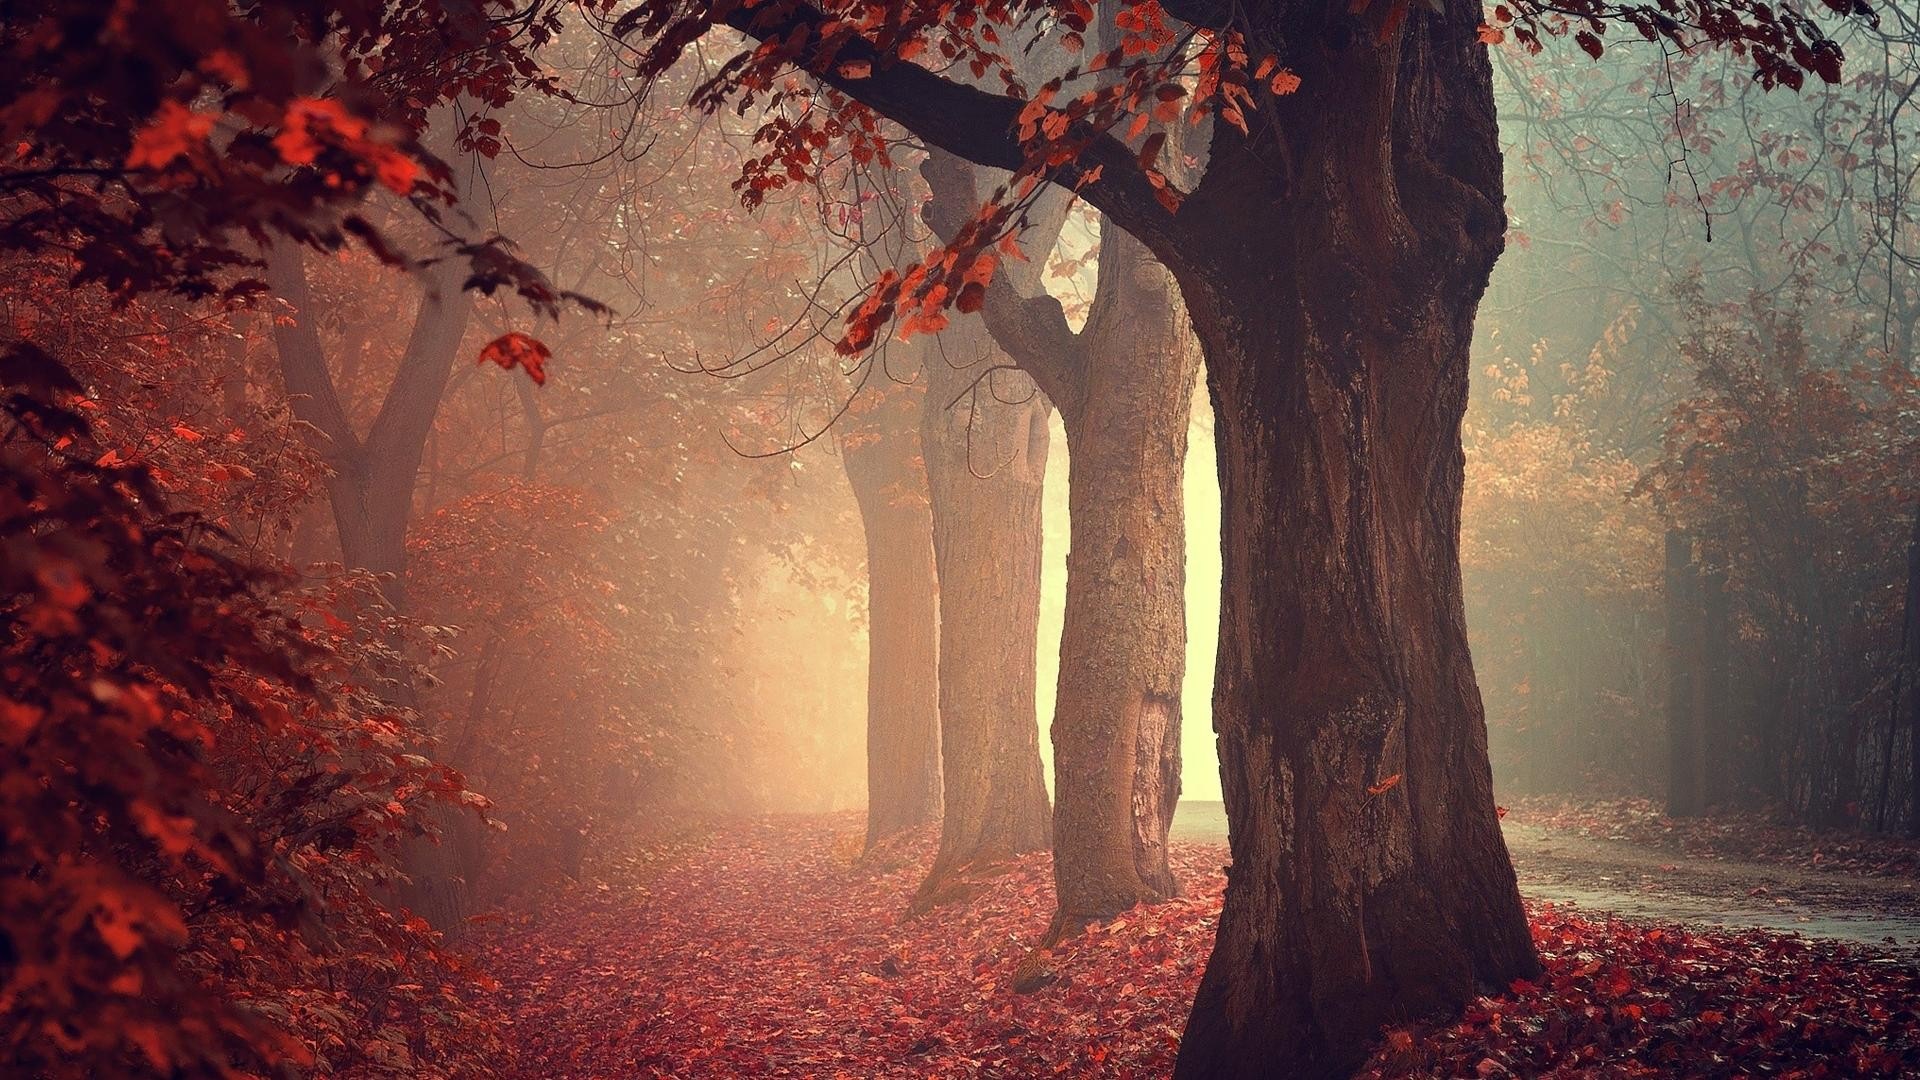 4k Laptop Wallpaper Fall Forest Fall Mist Trees Nature Leaves Forest Wallpaper